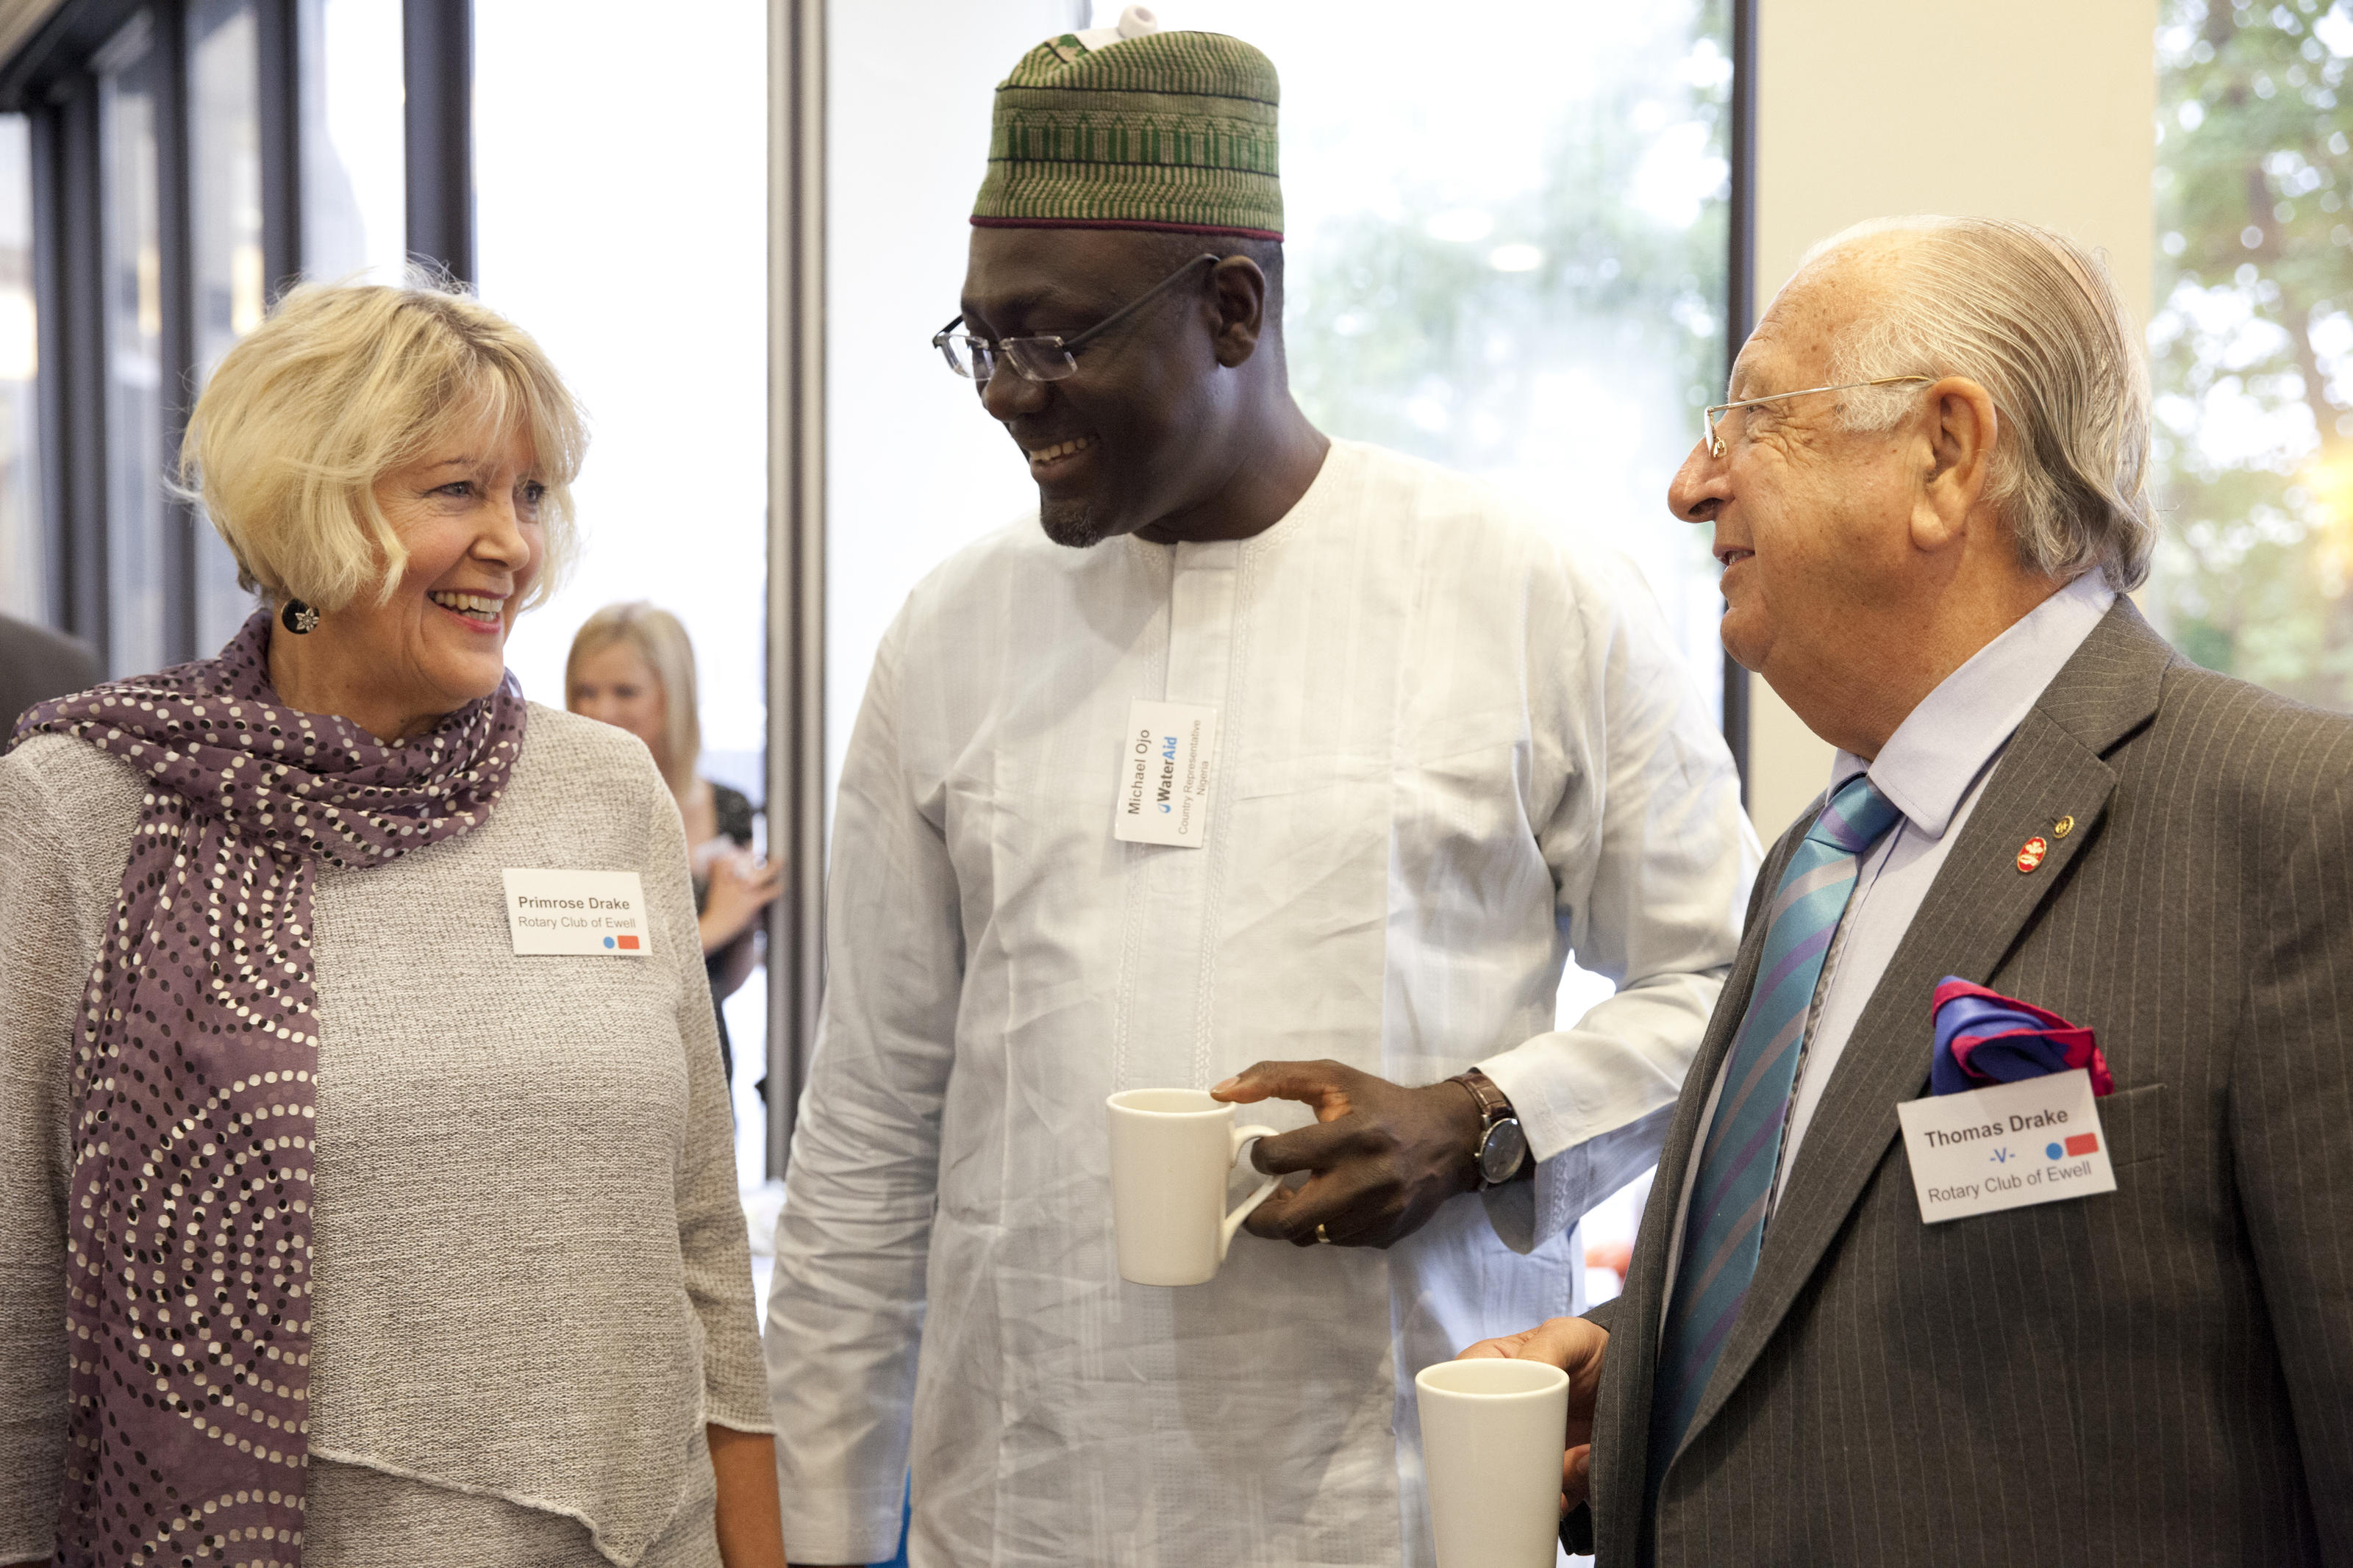 Supporters, Primrose Drake and Thomas Drake with Michael Ojo, (cenntre) Country Representative Nigeria, at the ASM, London, UK, 2013.